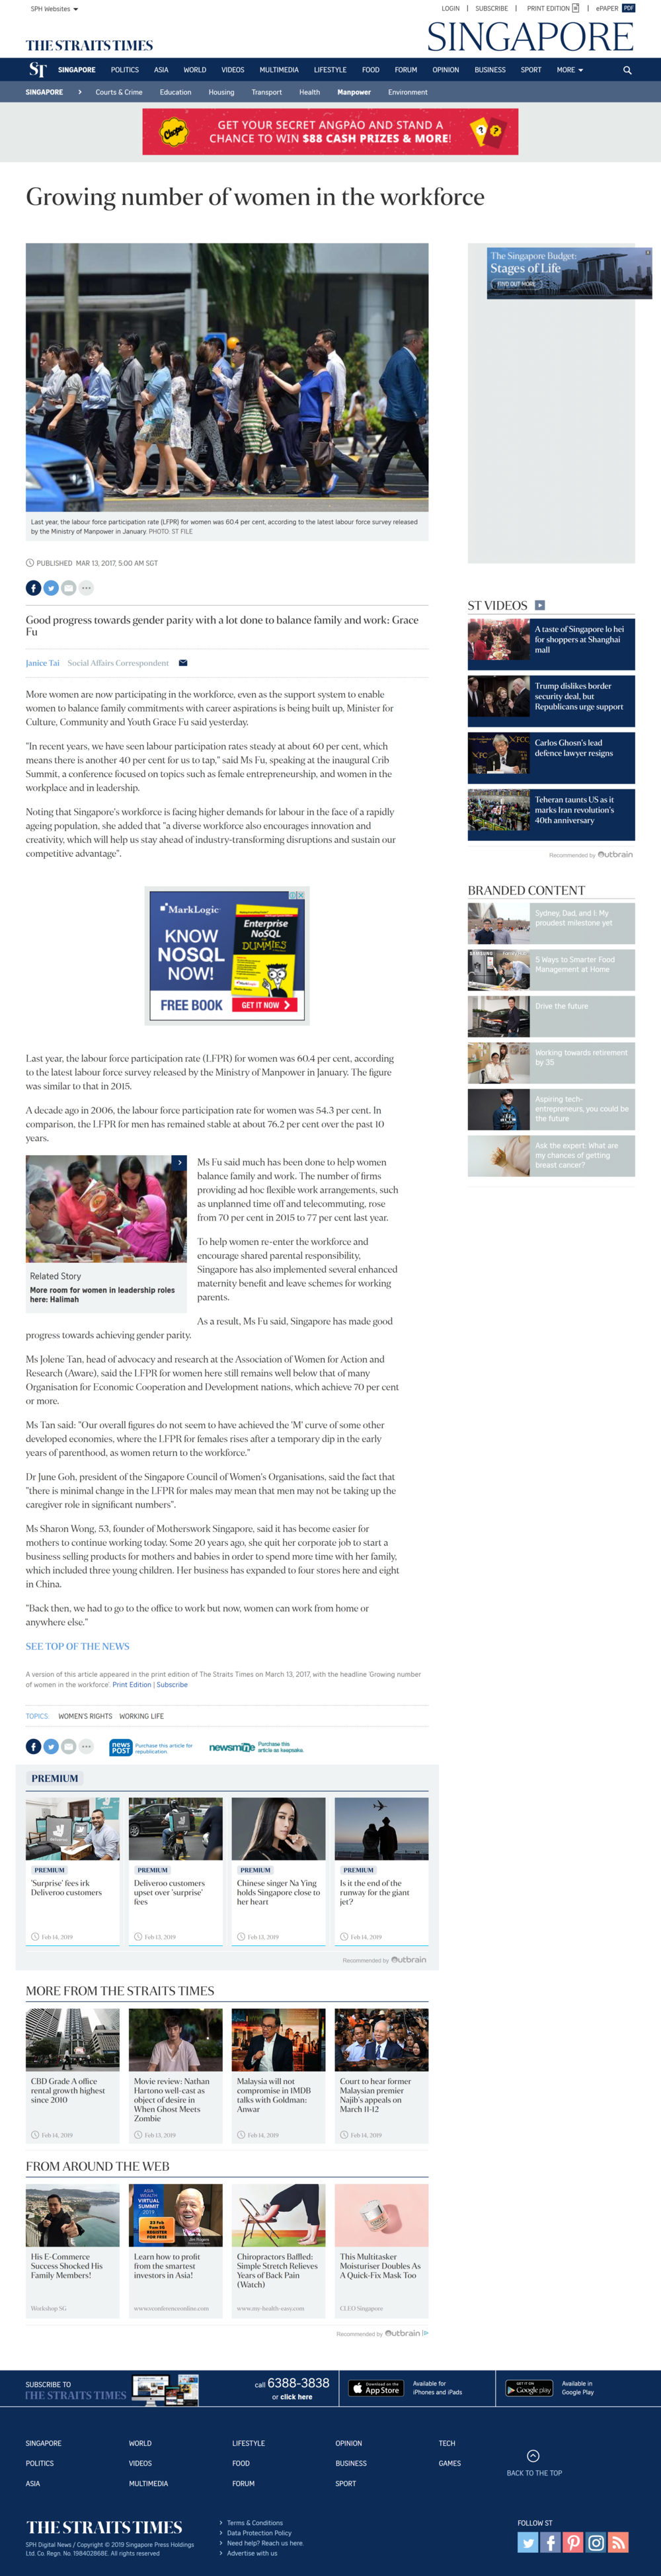 screencapture-straitstimes-singapore-manpower-growing-number-of-women-in-the-workforce-2019-02-14-22_43_44.png